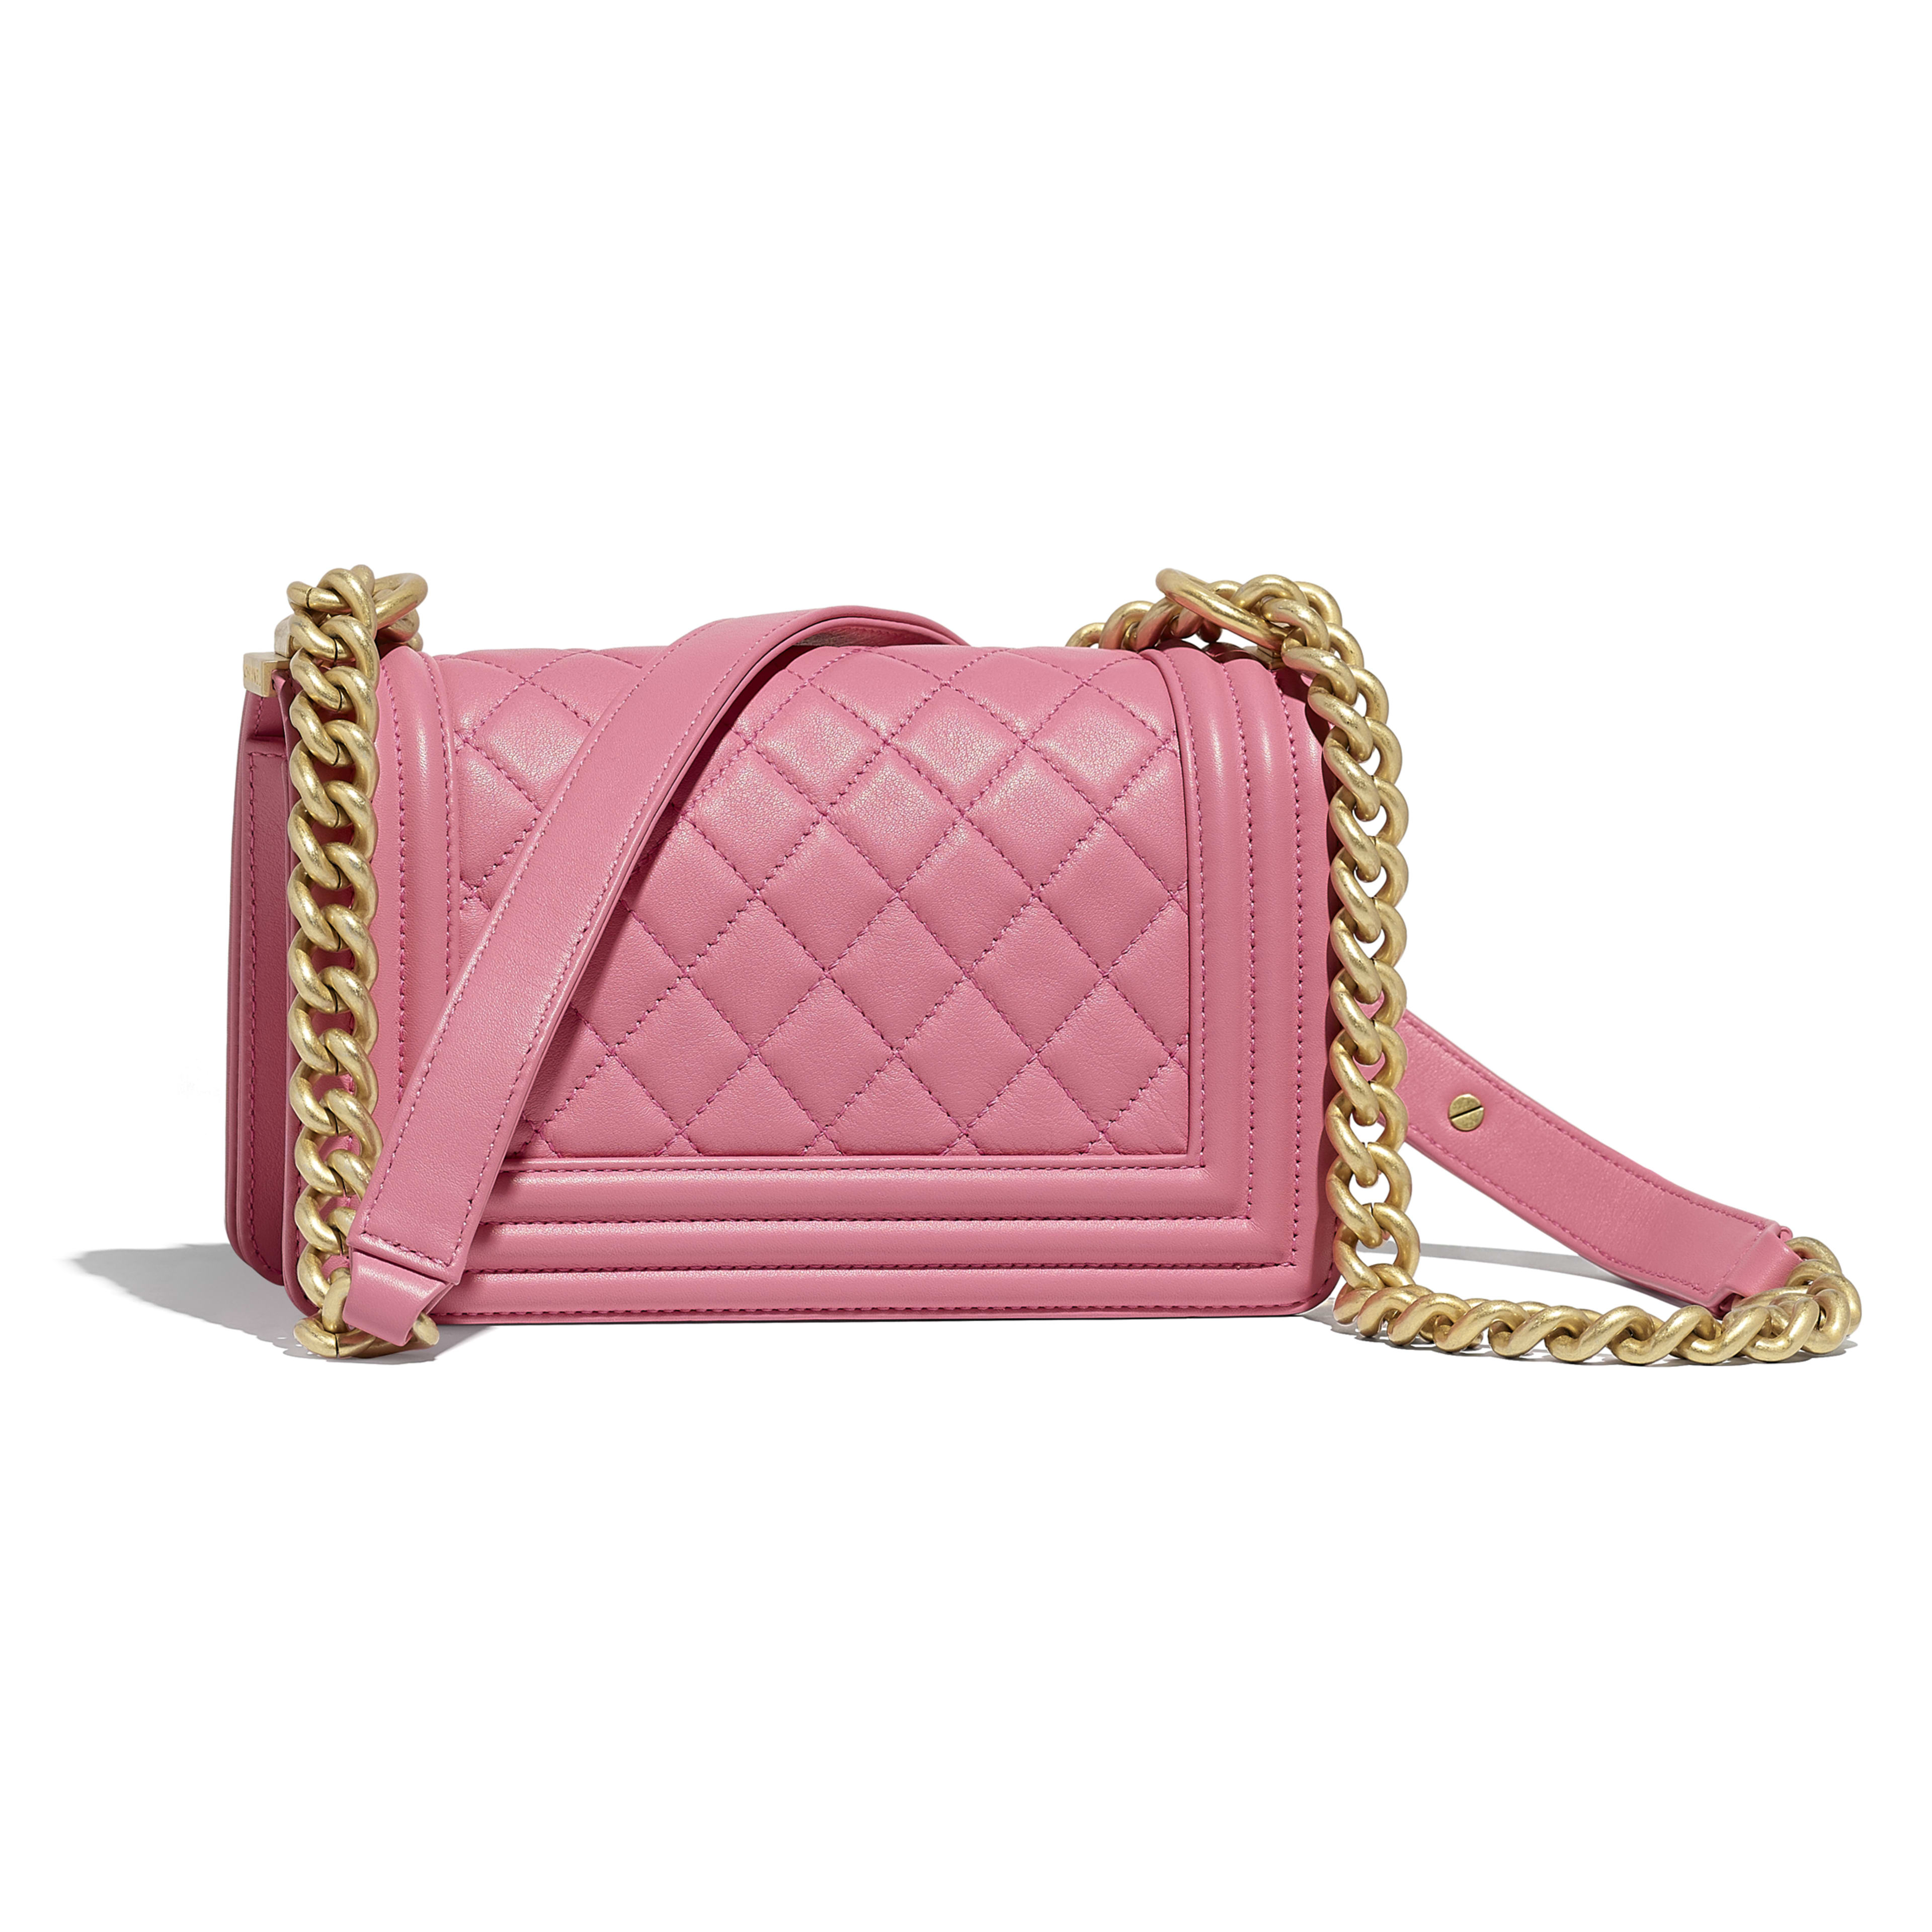 Small BOY CHANEL Handbag - Pink - Calfskin & Gold-Tone Metal - Alternative view - see full sized version